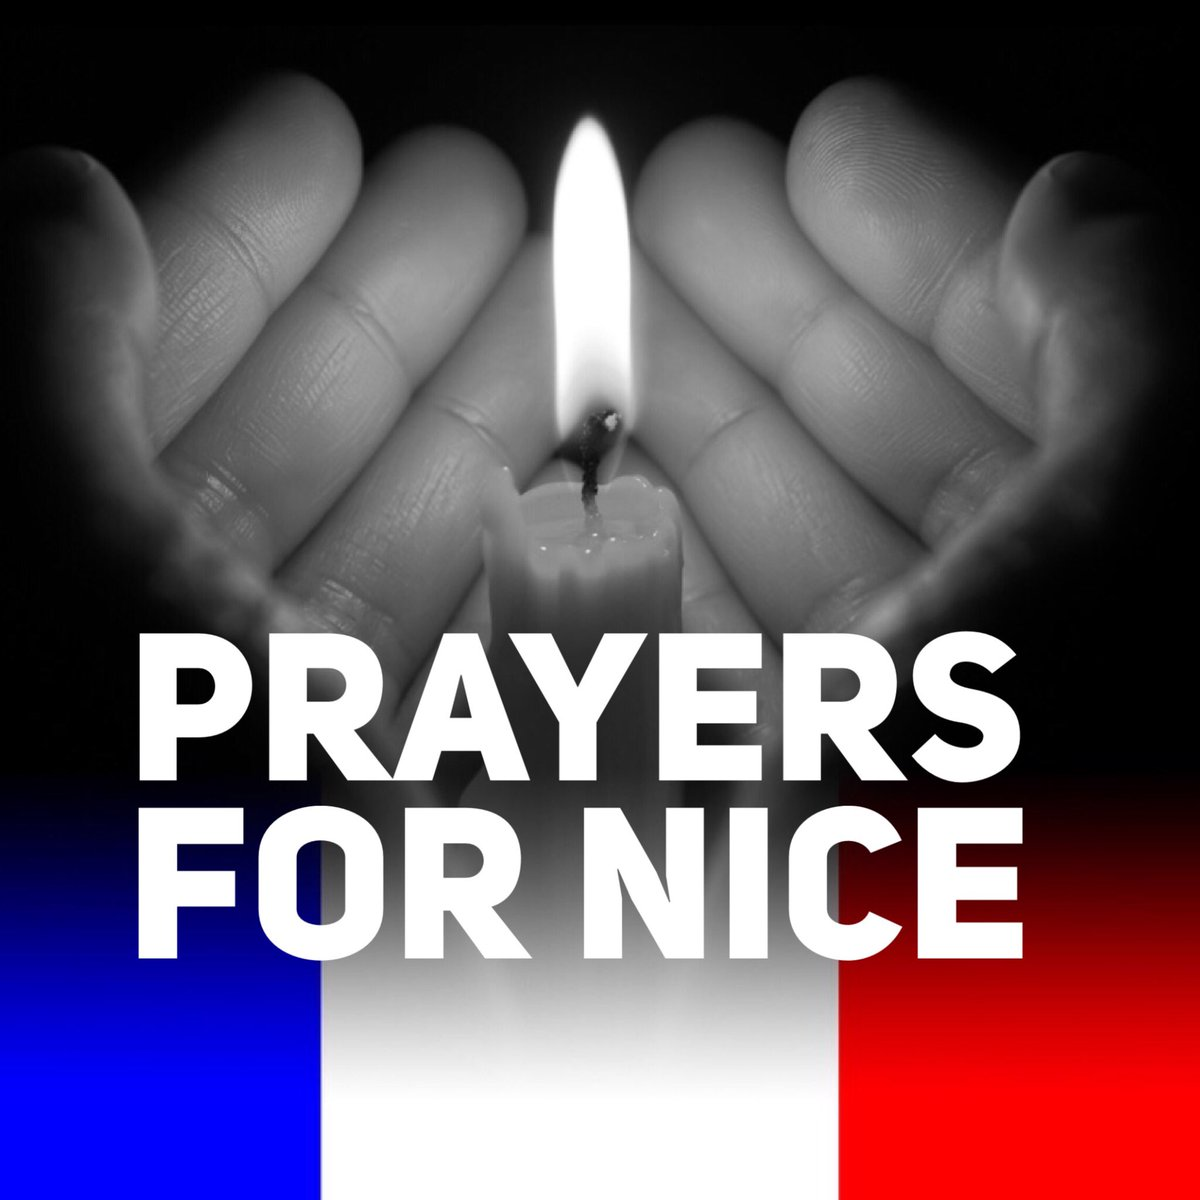 Eternal rest grant unto them, O Lord... #PrayForPeace #PrayForNice https://t.co/Wy9chrewDo